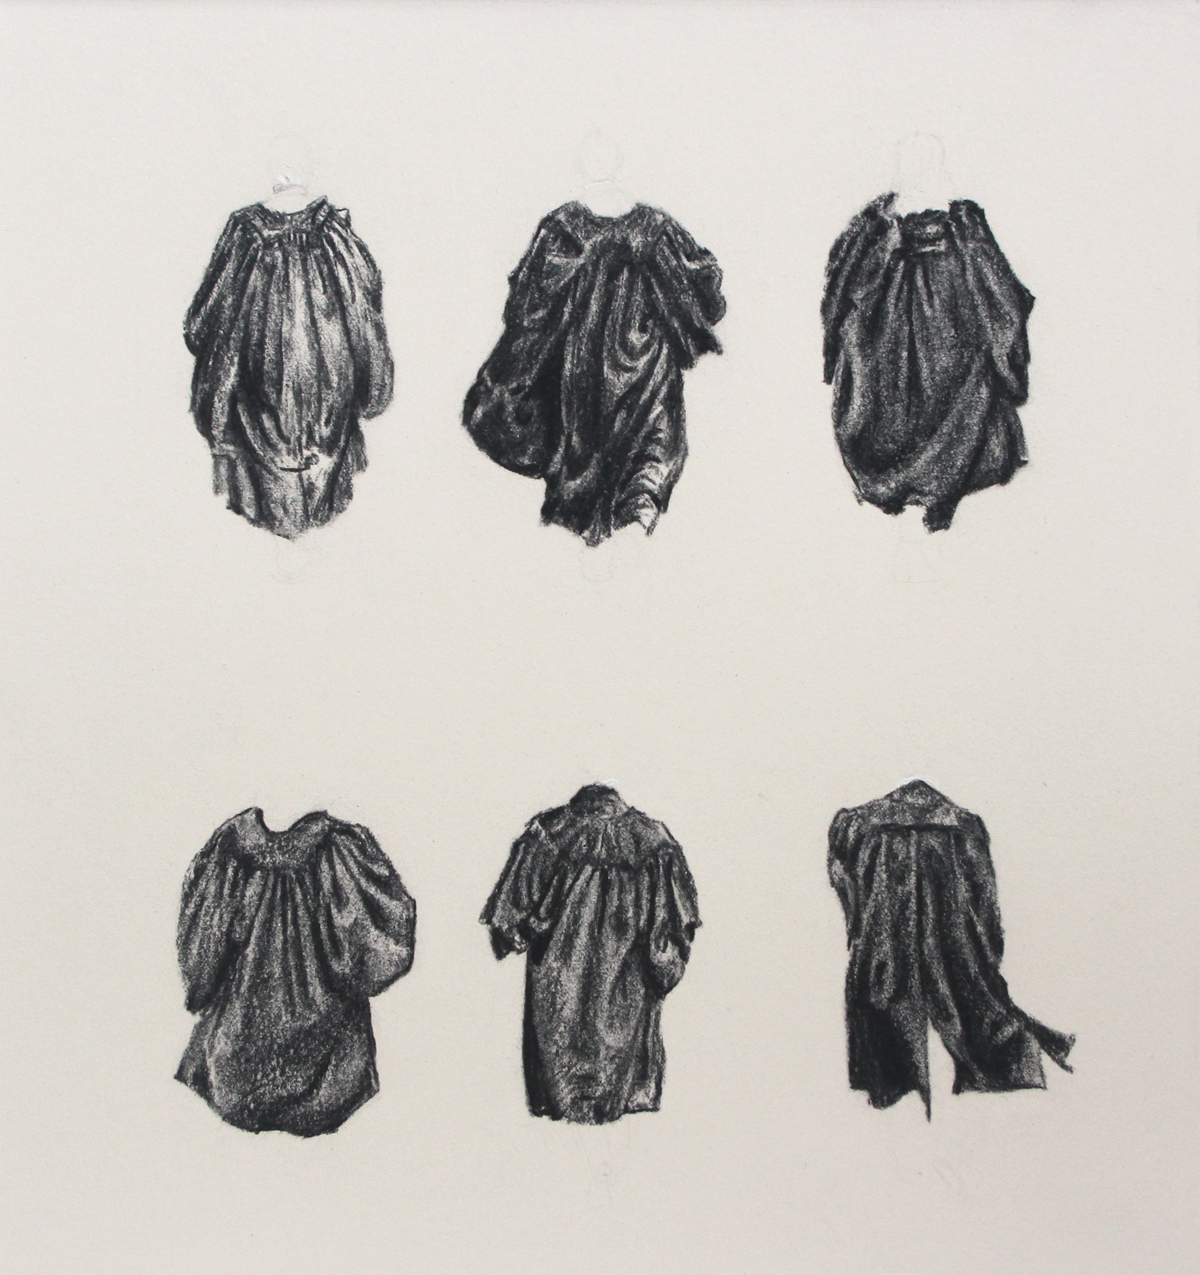 Six Studies of Barristers' Gowns